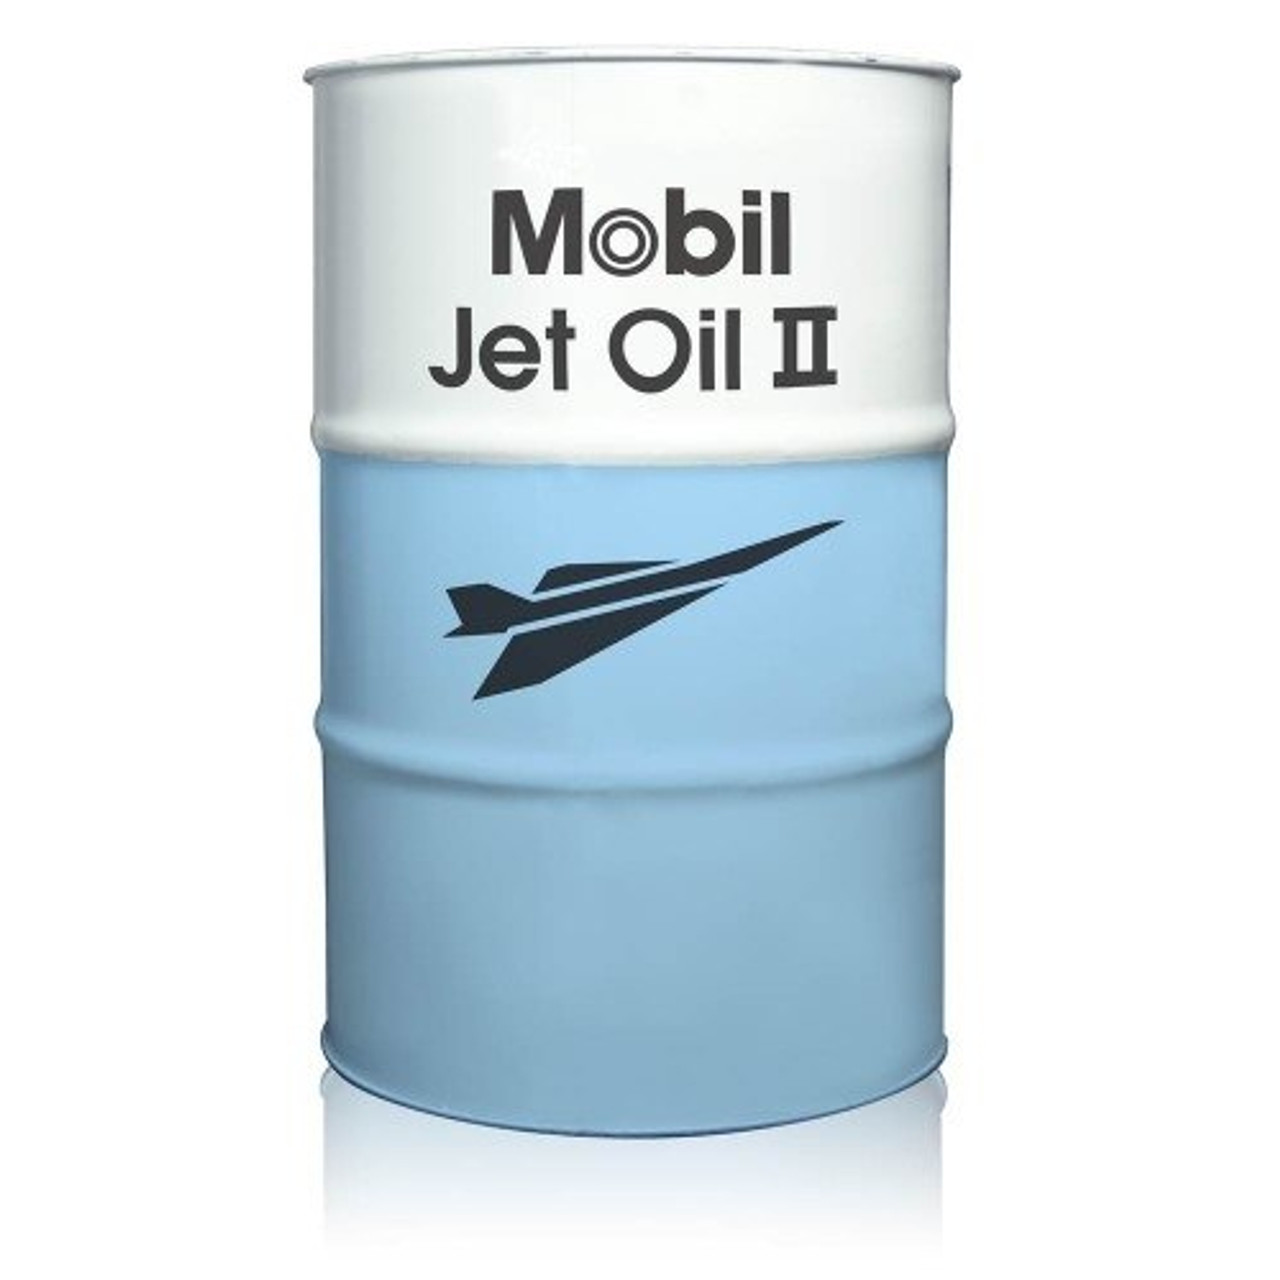 Mobil Jet II Synthetic Jet Engine Oil MIL-PRF-23699